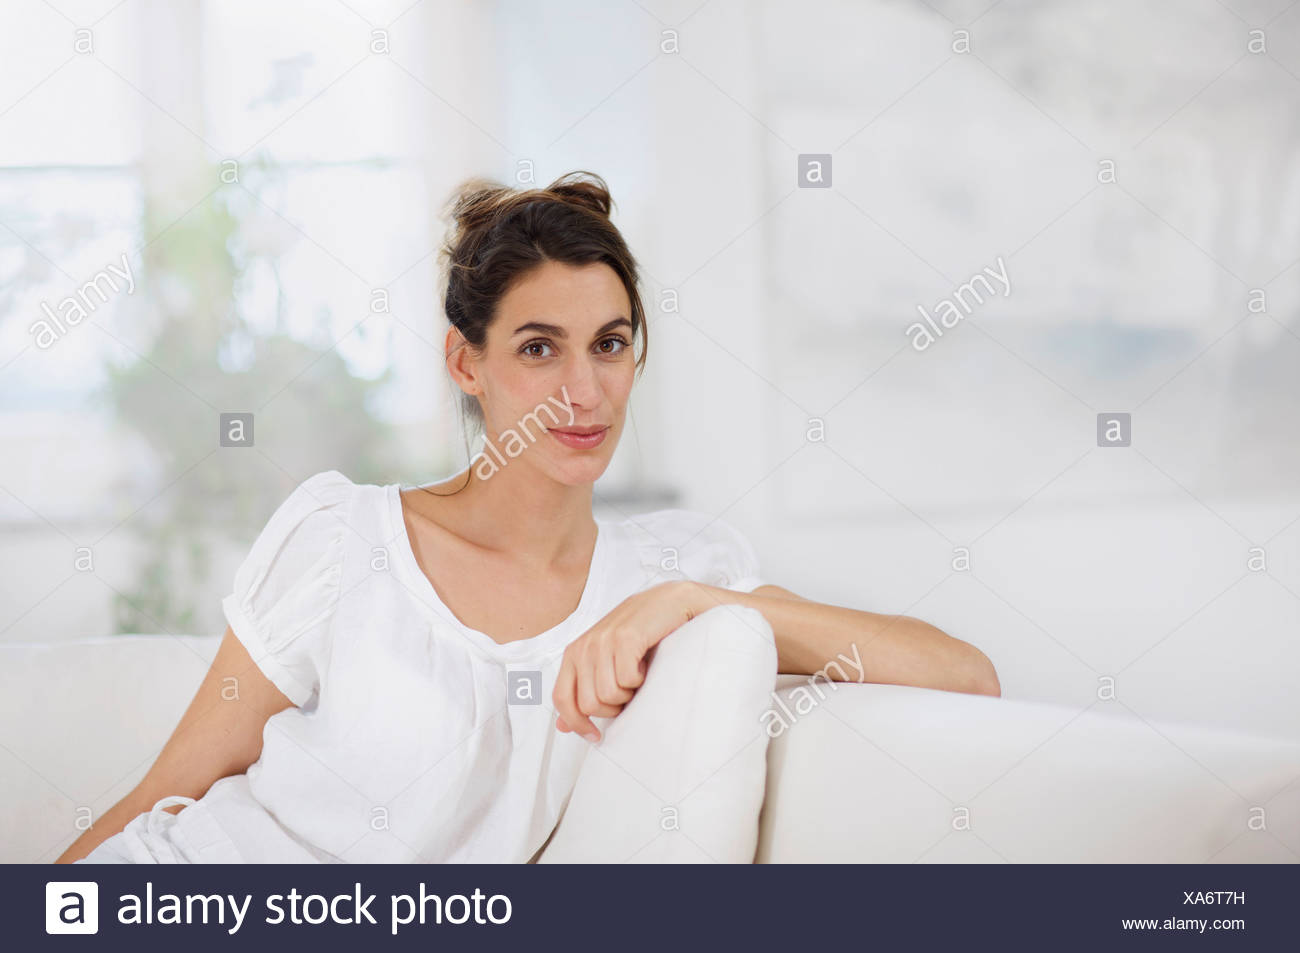 sophisticated woman relaxing - Stock Image